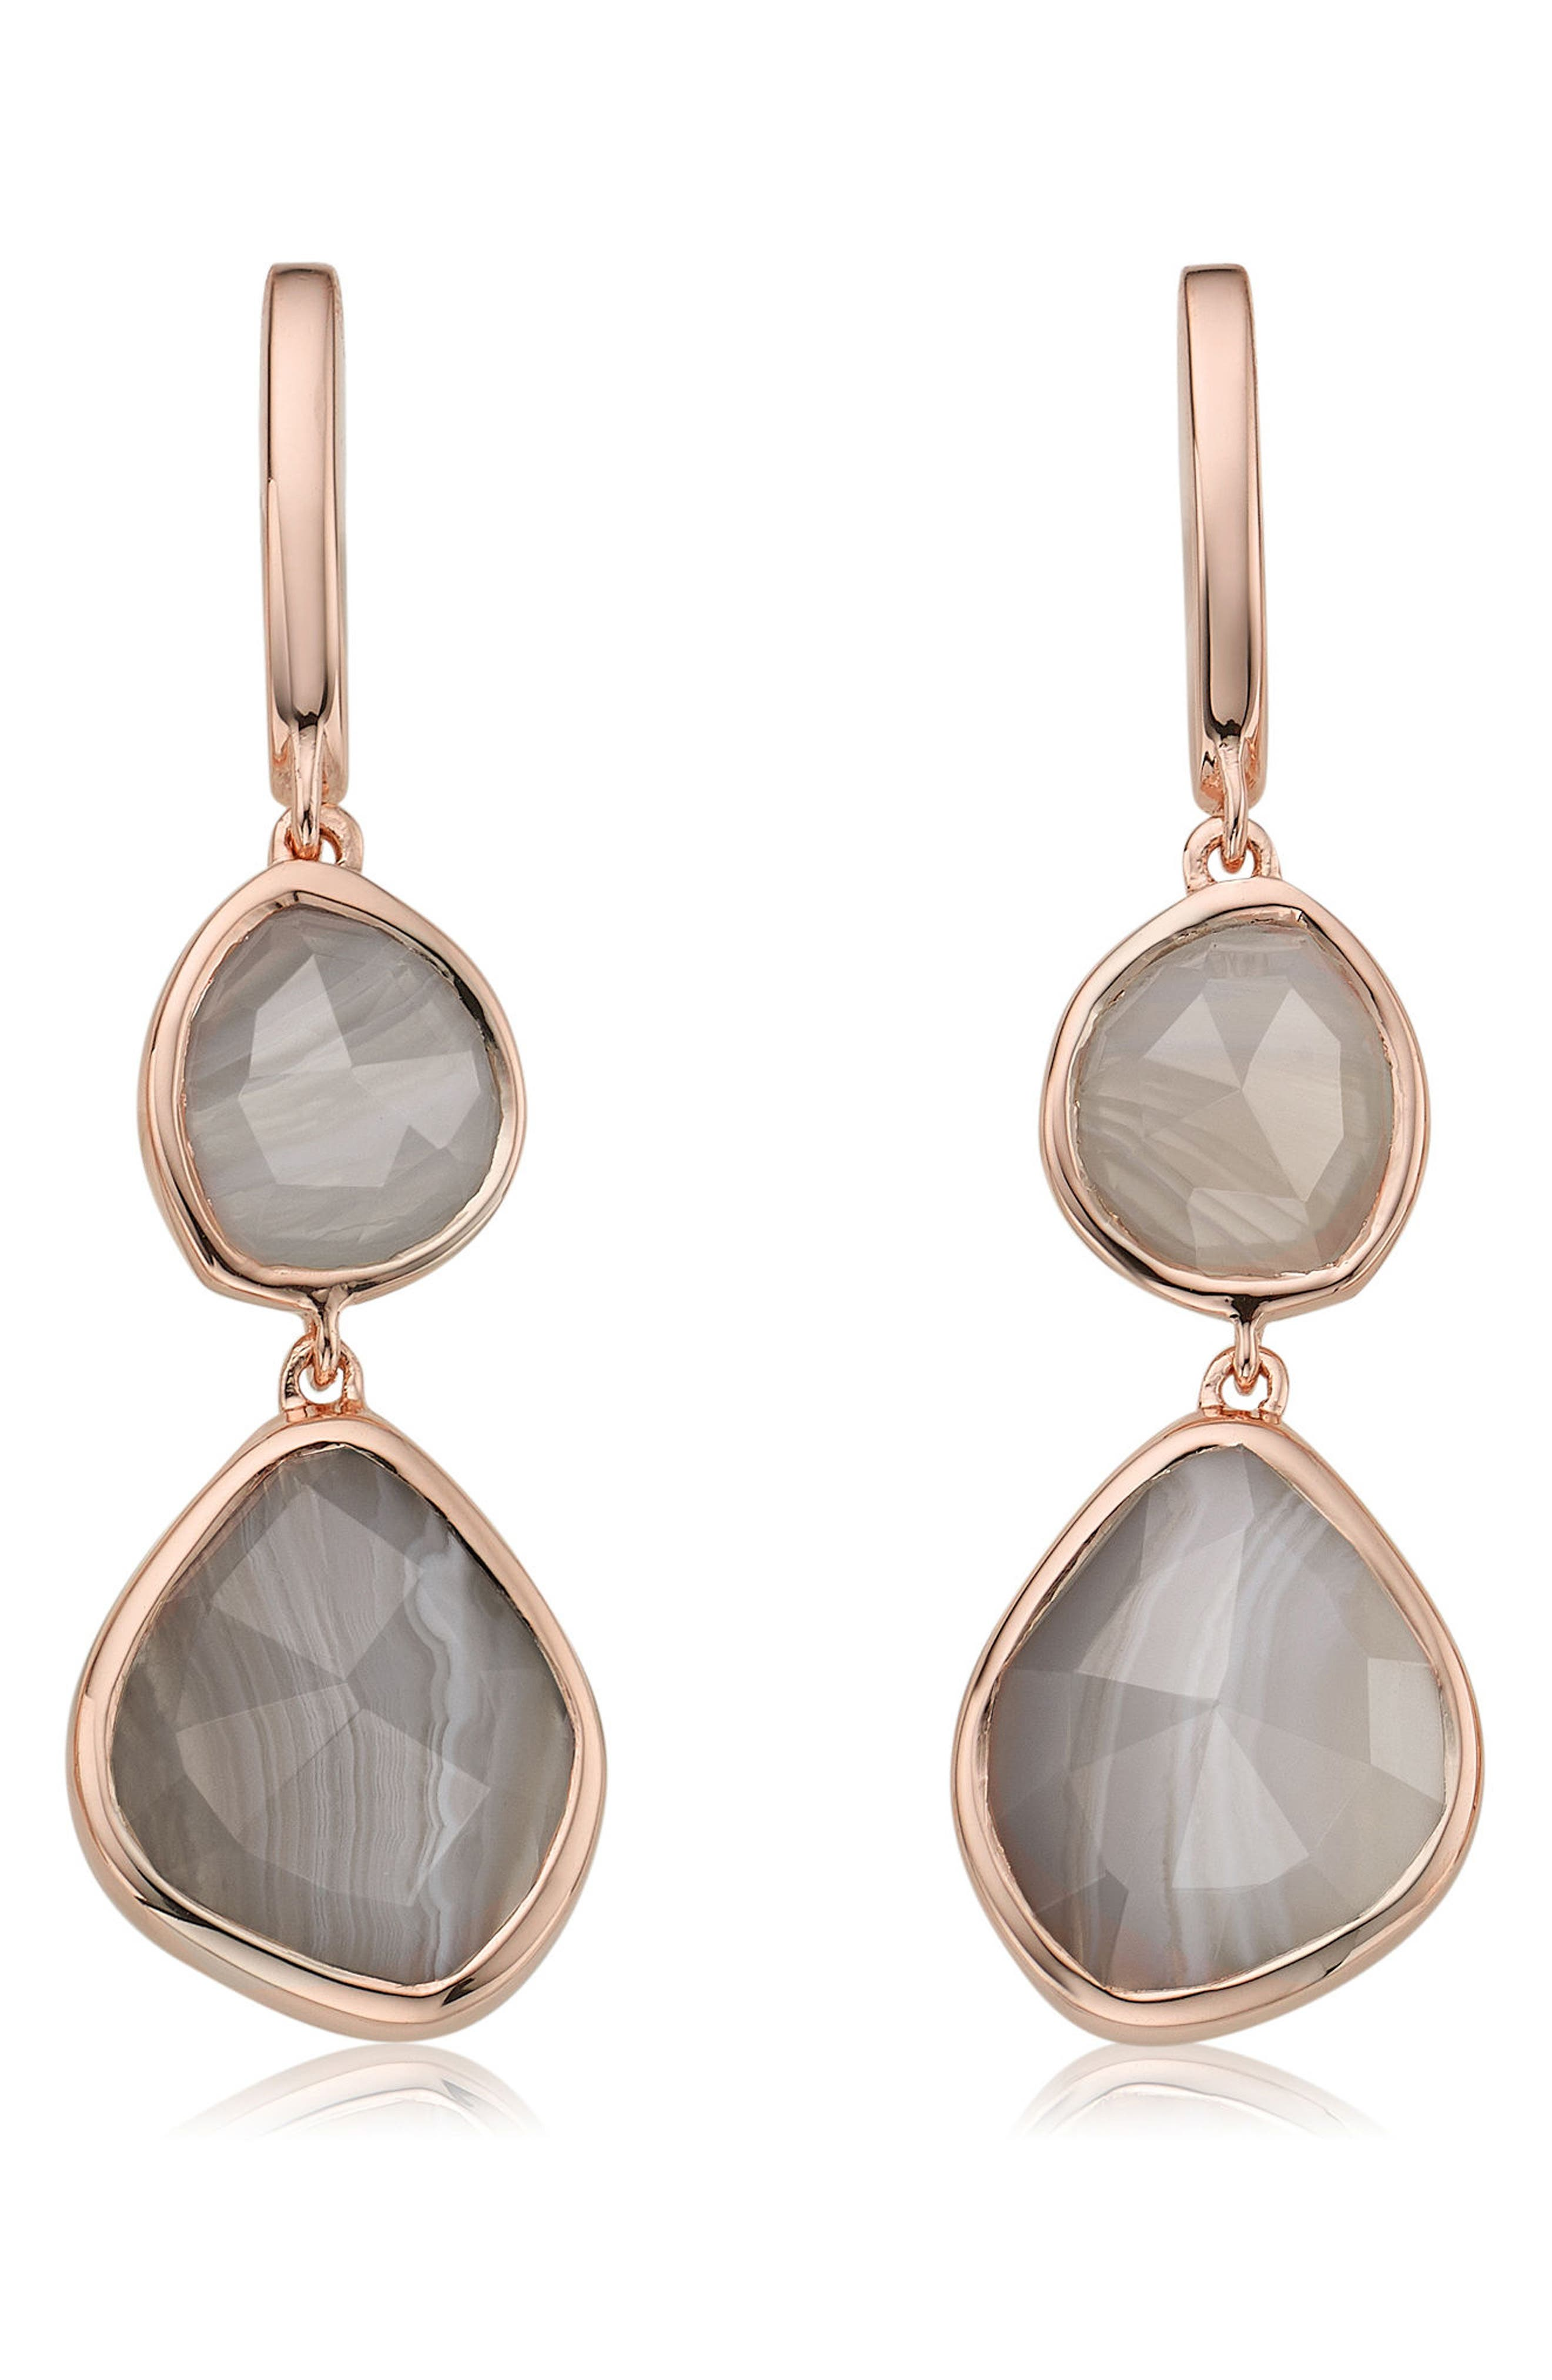 Siren Semiprecious Stone Drop Earrings,                             Main thumbnail 1, color,                             020